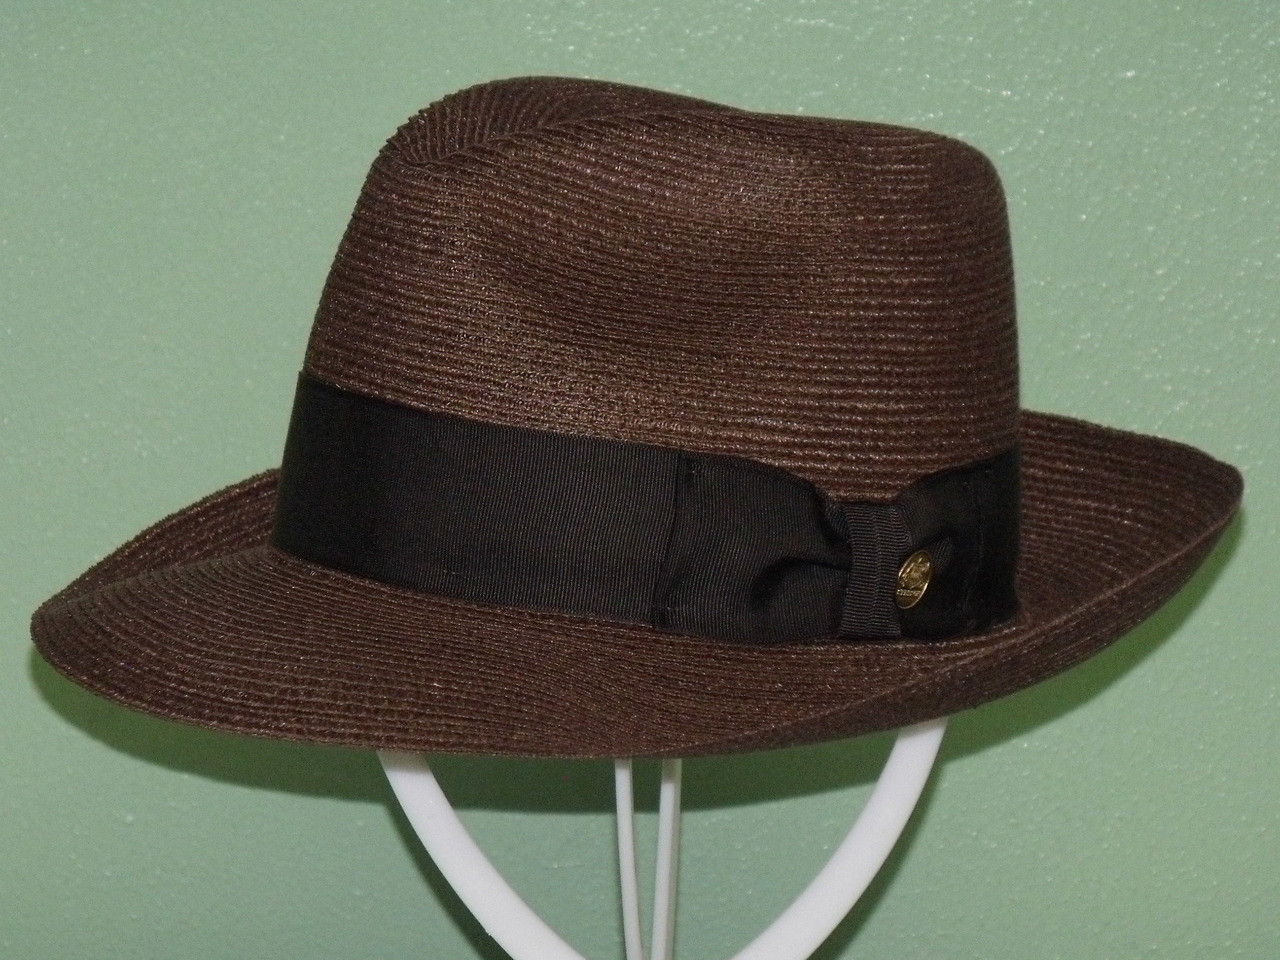 87d68cb006104 Stetson Temple Hemp Braid Fedora Hat - One 2 mini Ranch